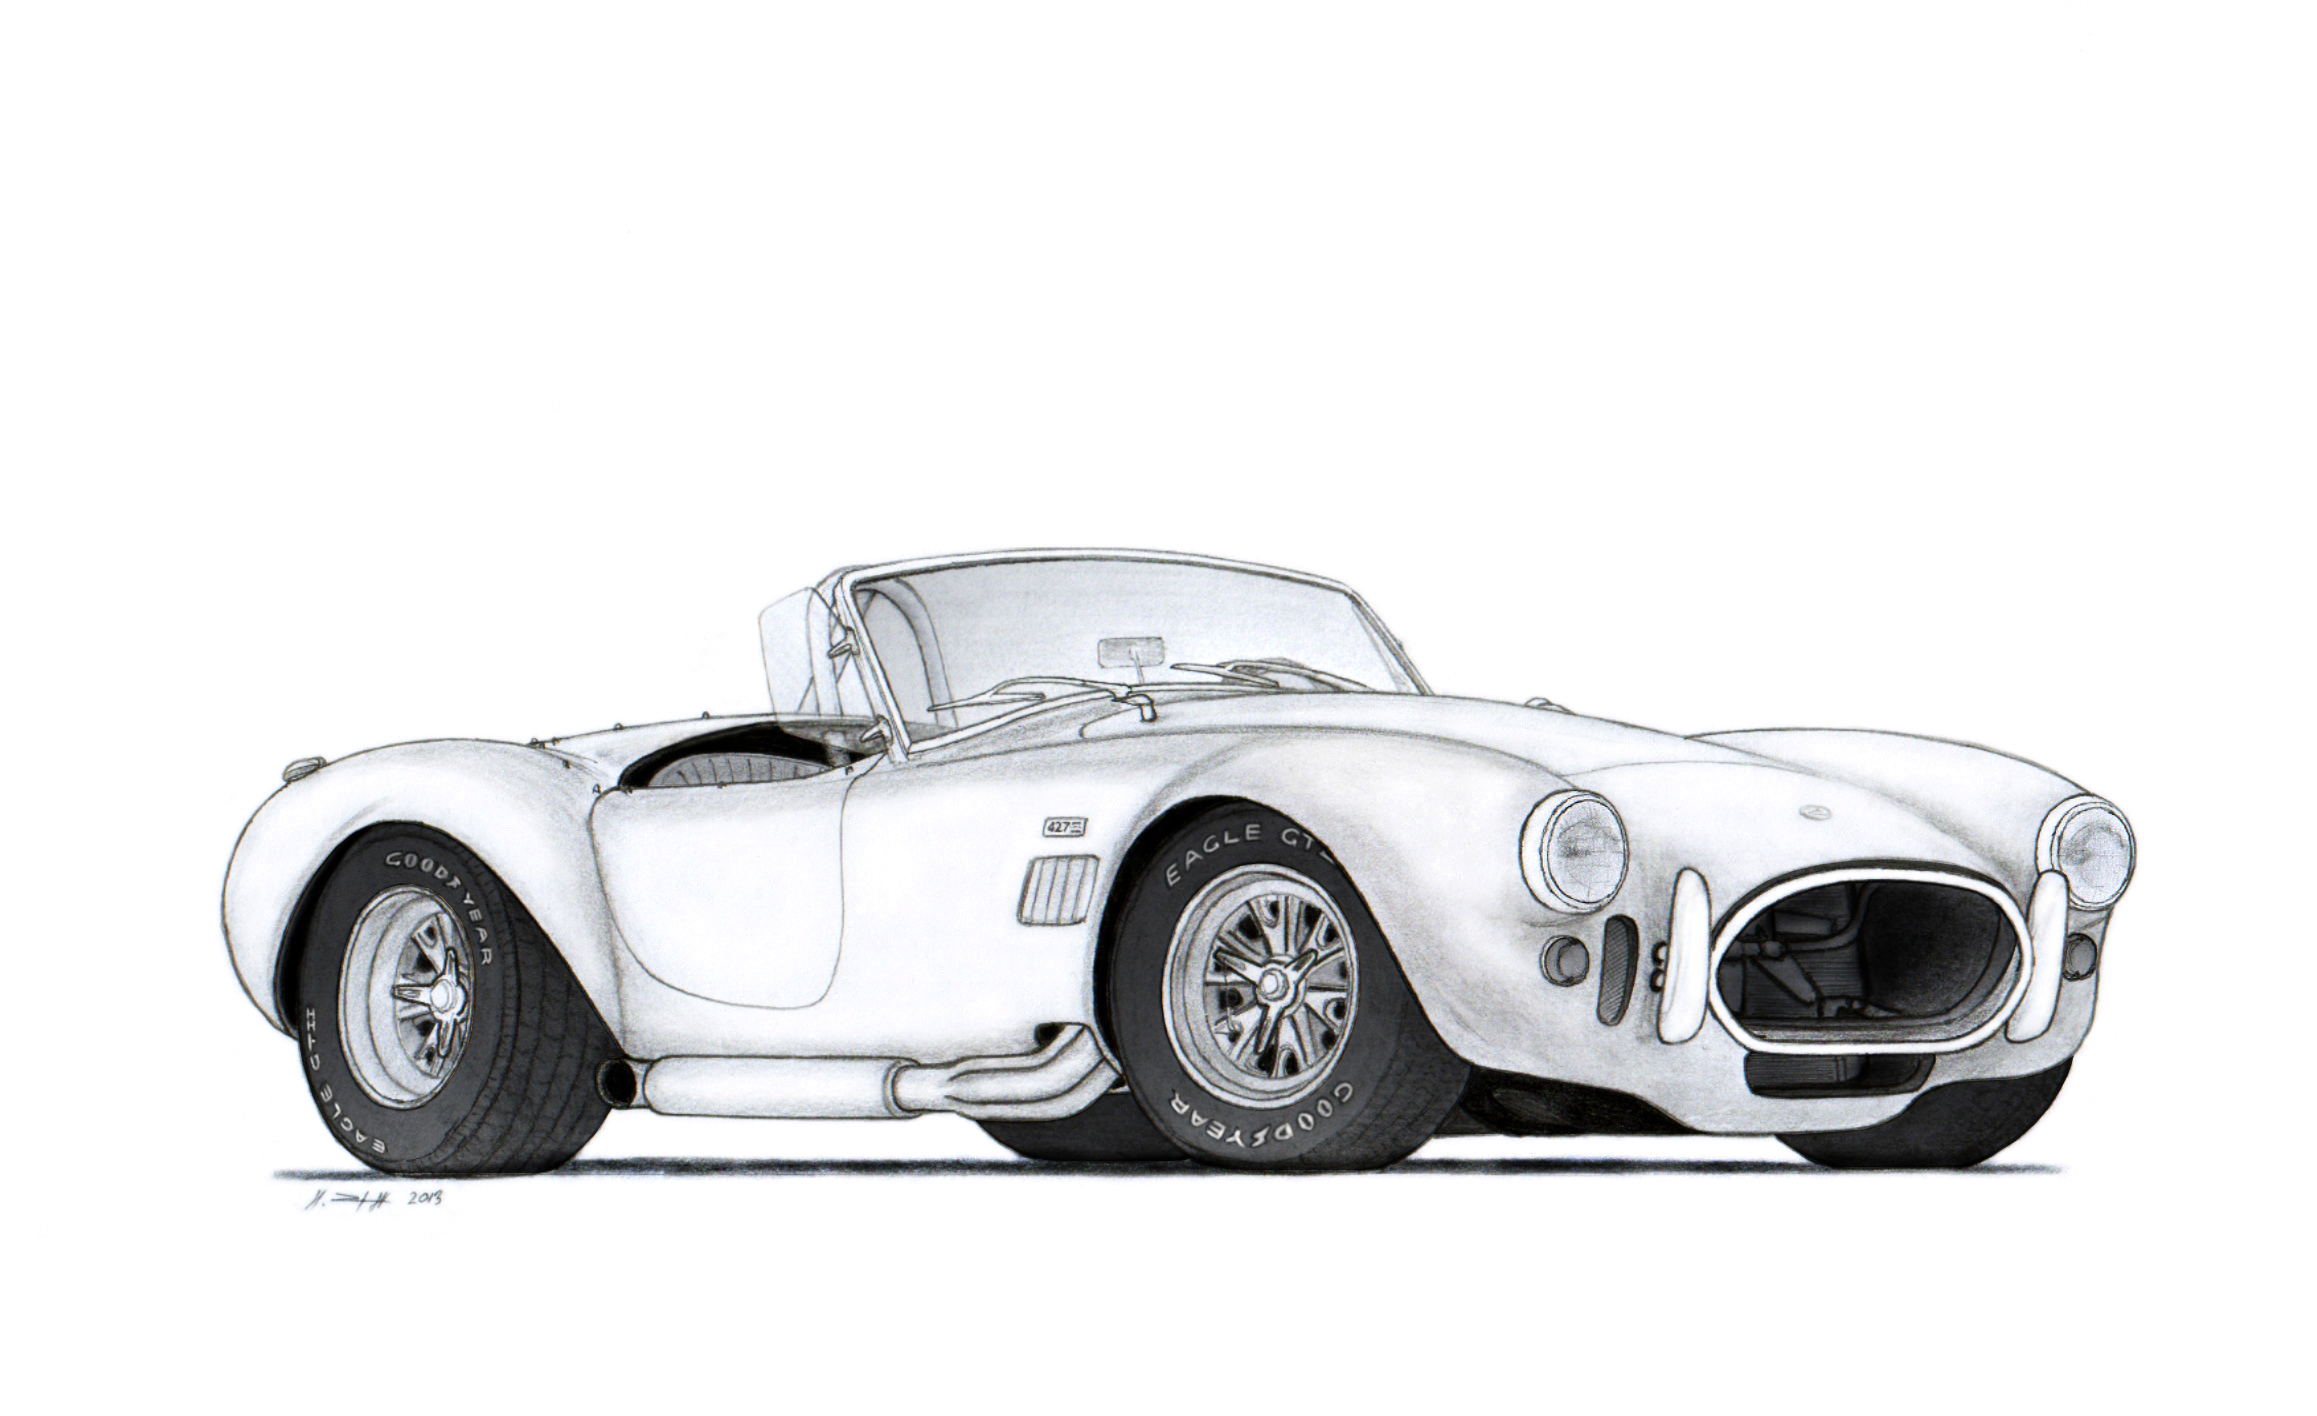 1966 Shelby Cobra 427 Drawing By Vertualissimo On Deviantart